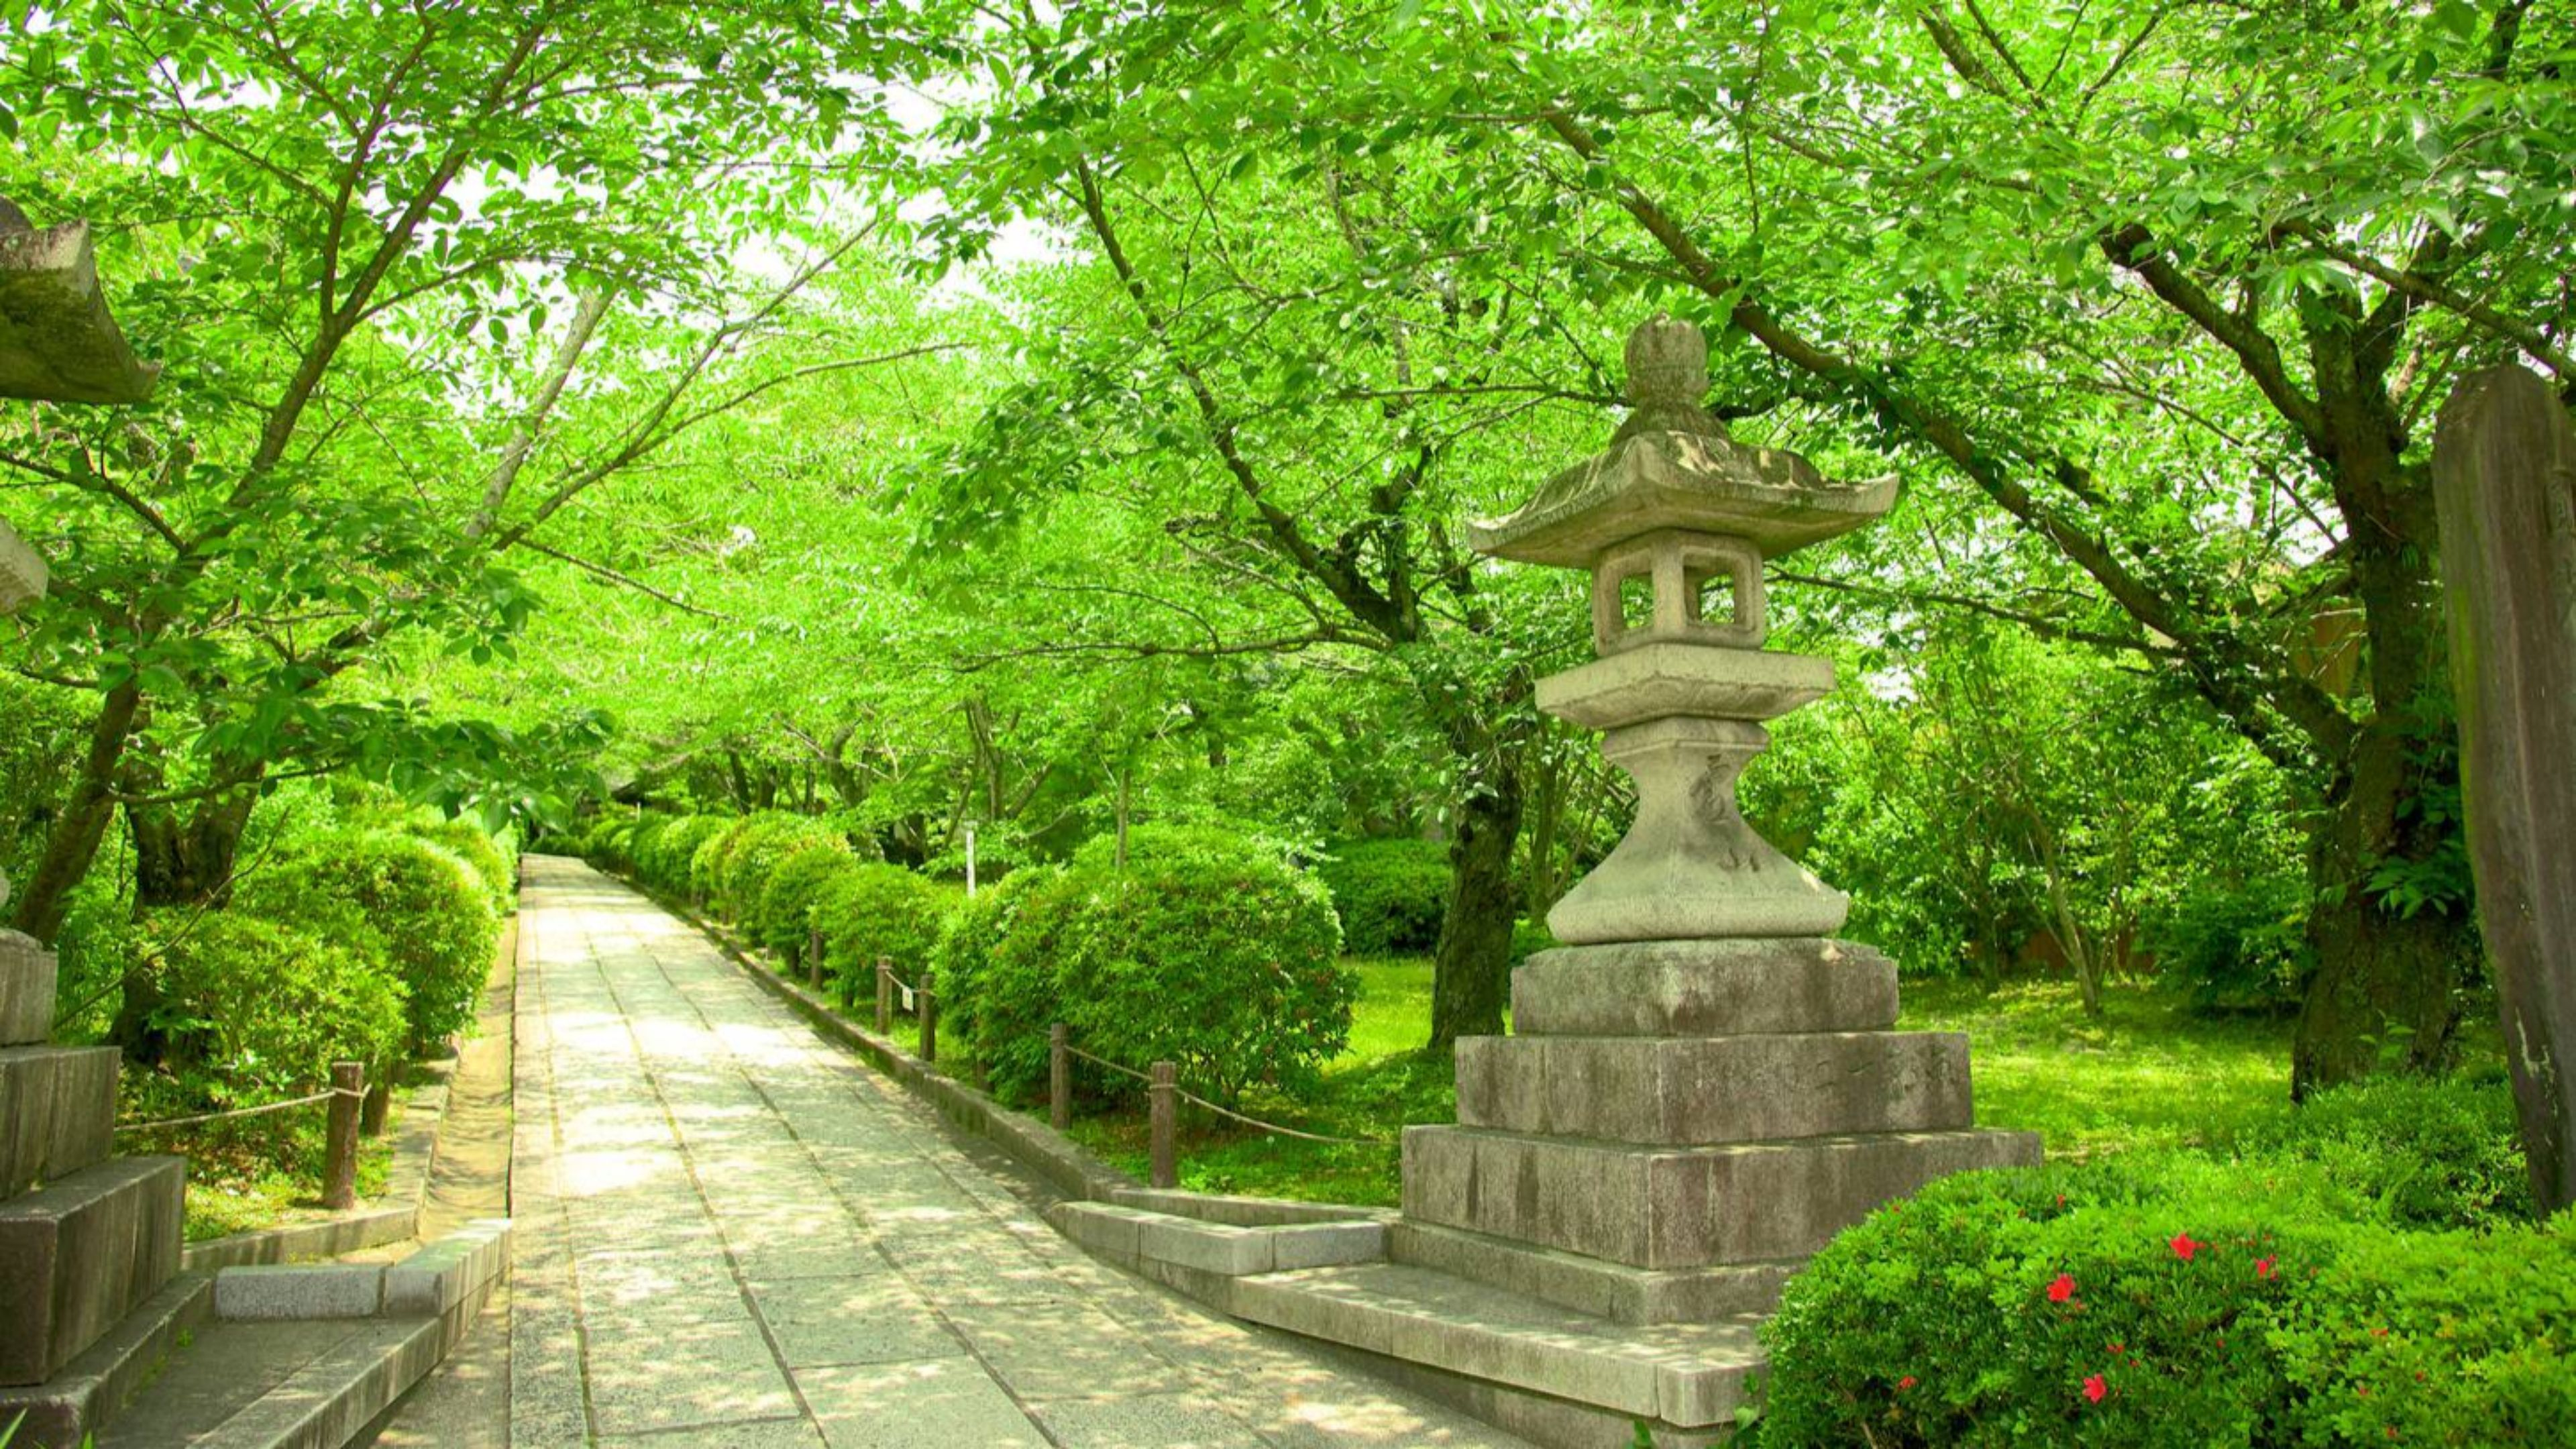 4K Kyoto Wallpapers - Top Free 4K Kyoto Backgrounds ...